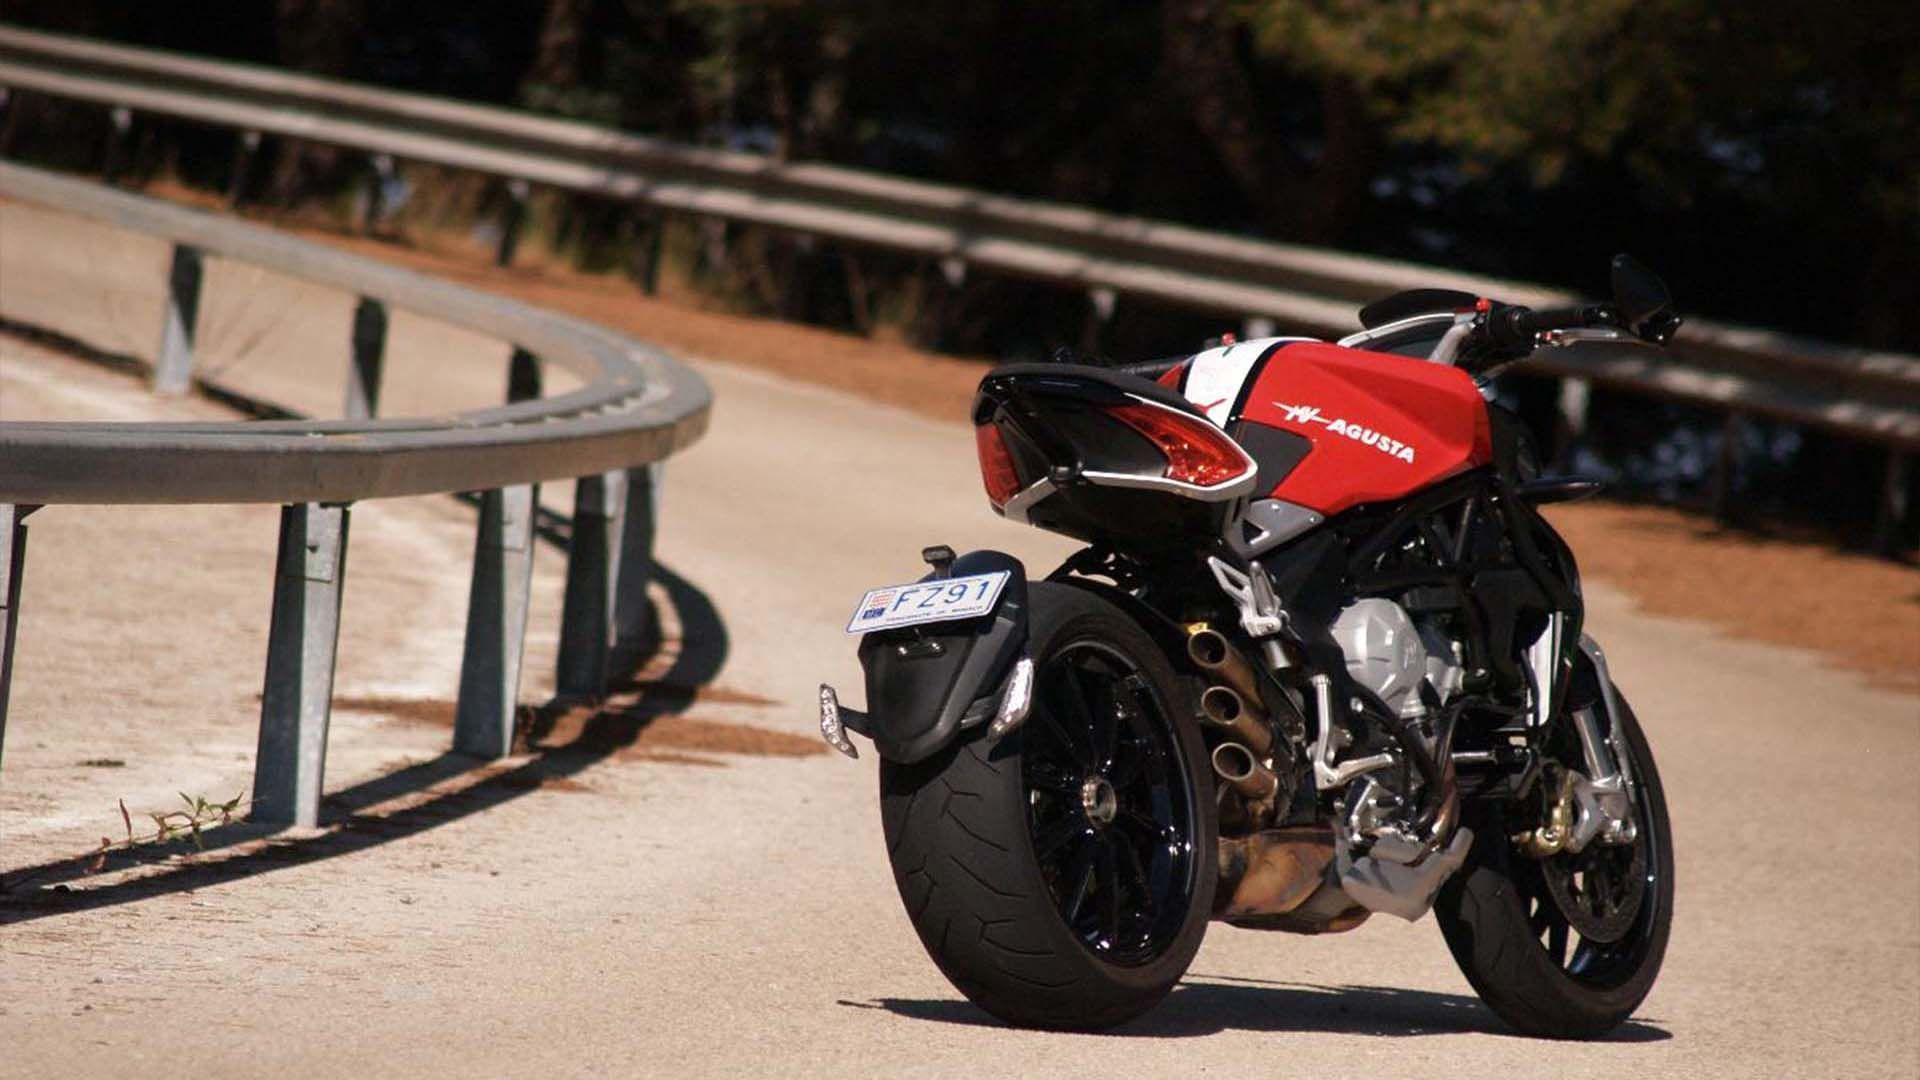 mv agusta wallpapers - wallpaper cave